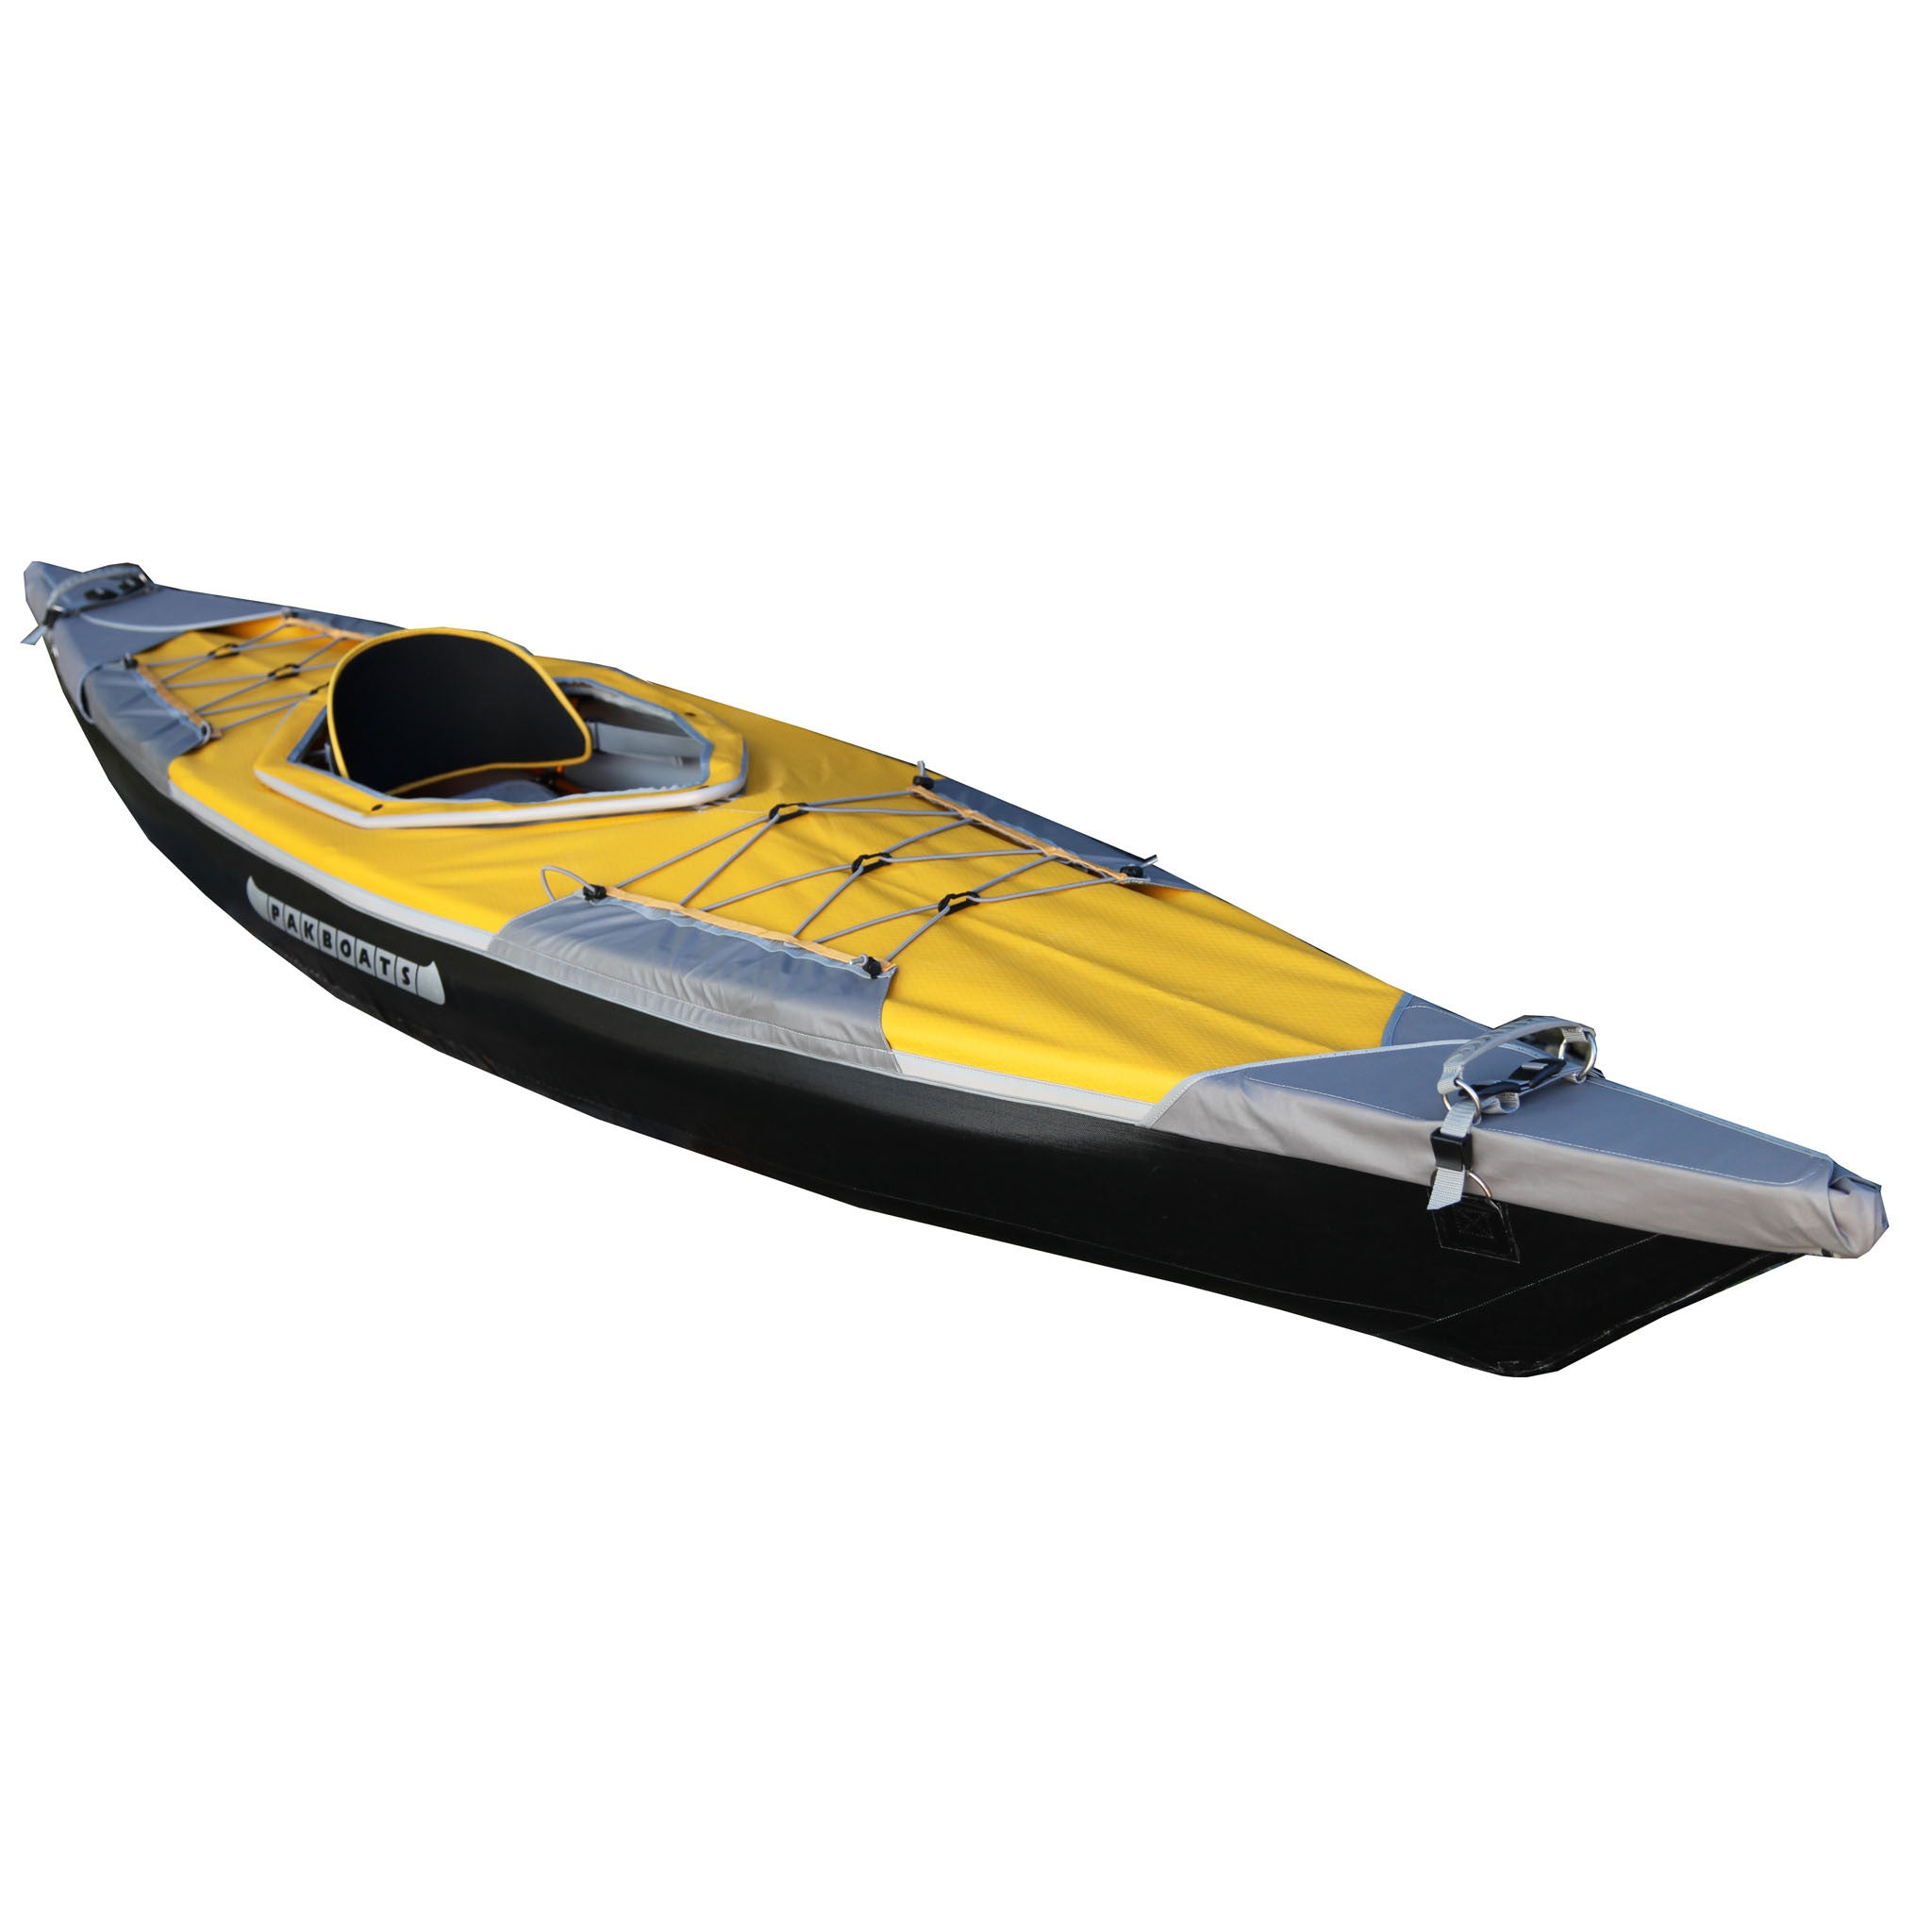 Deck in yellow for Puffin Saco from Pakboats